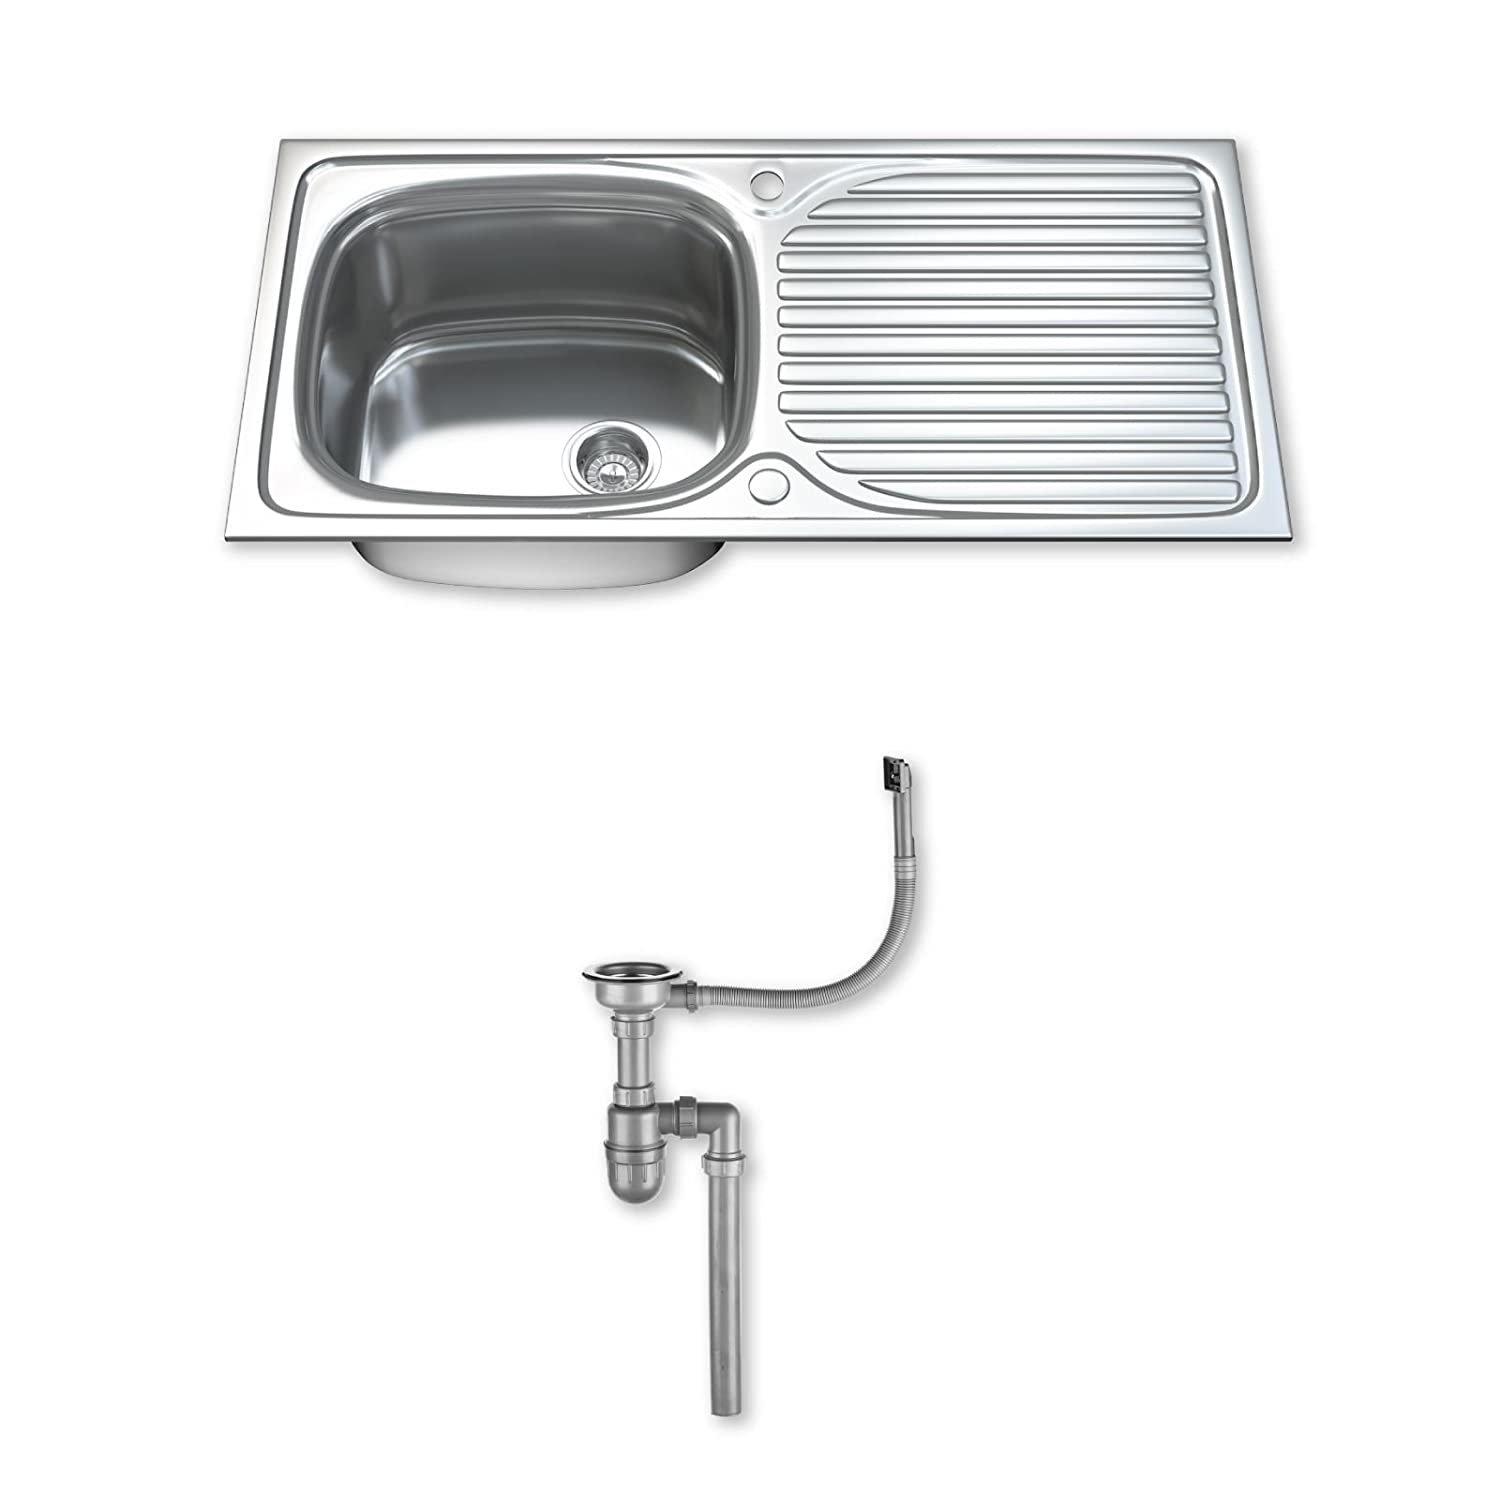 Dihl KS-1003-WST1 1.0 Single Bowl Stainless Steel Kitchen Sink with Drainer and Waste - Chrome KSW-1003-WST1